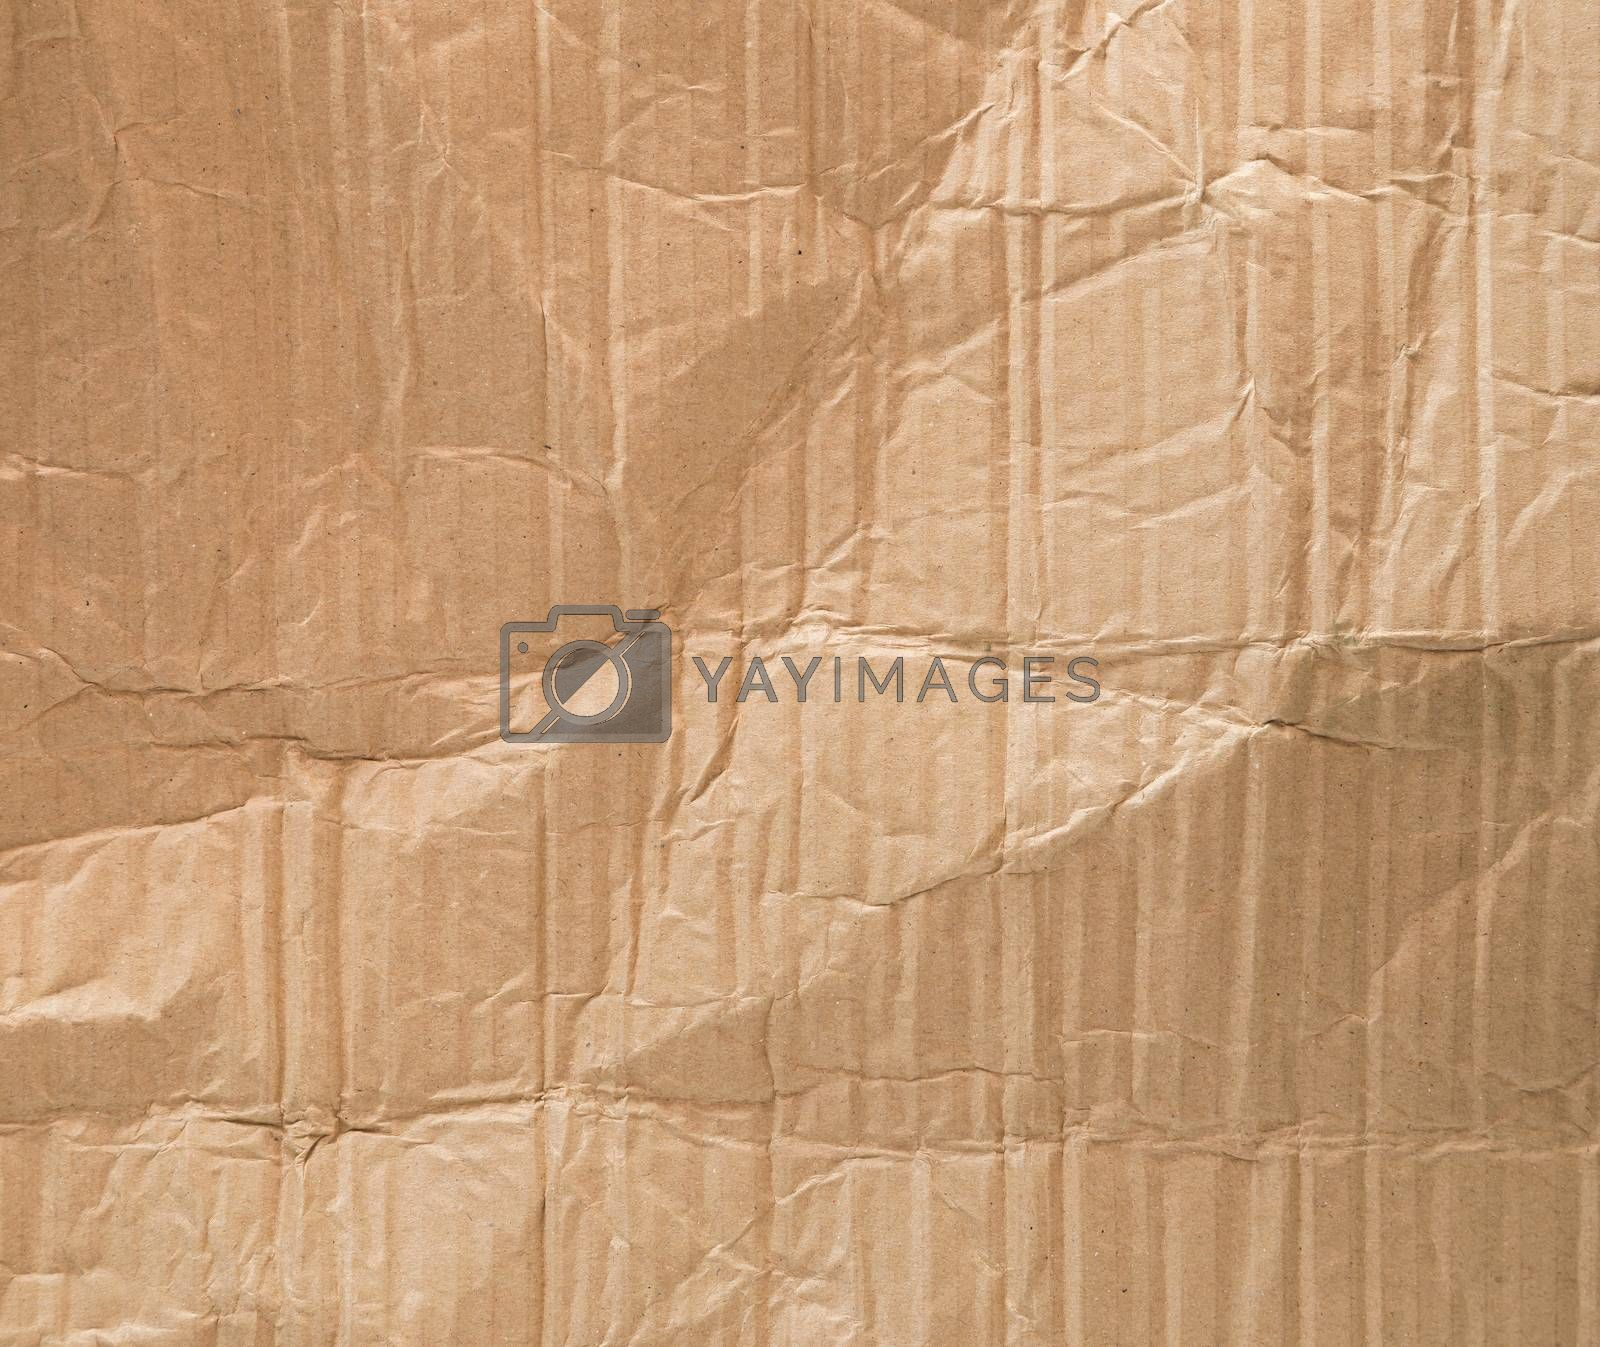 Texture of crumpled brown paper.